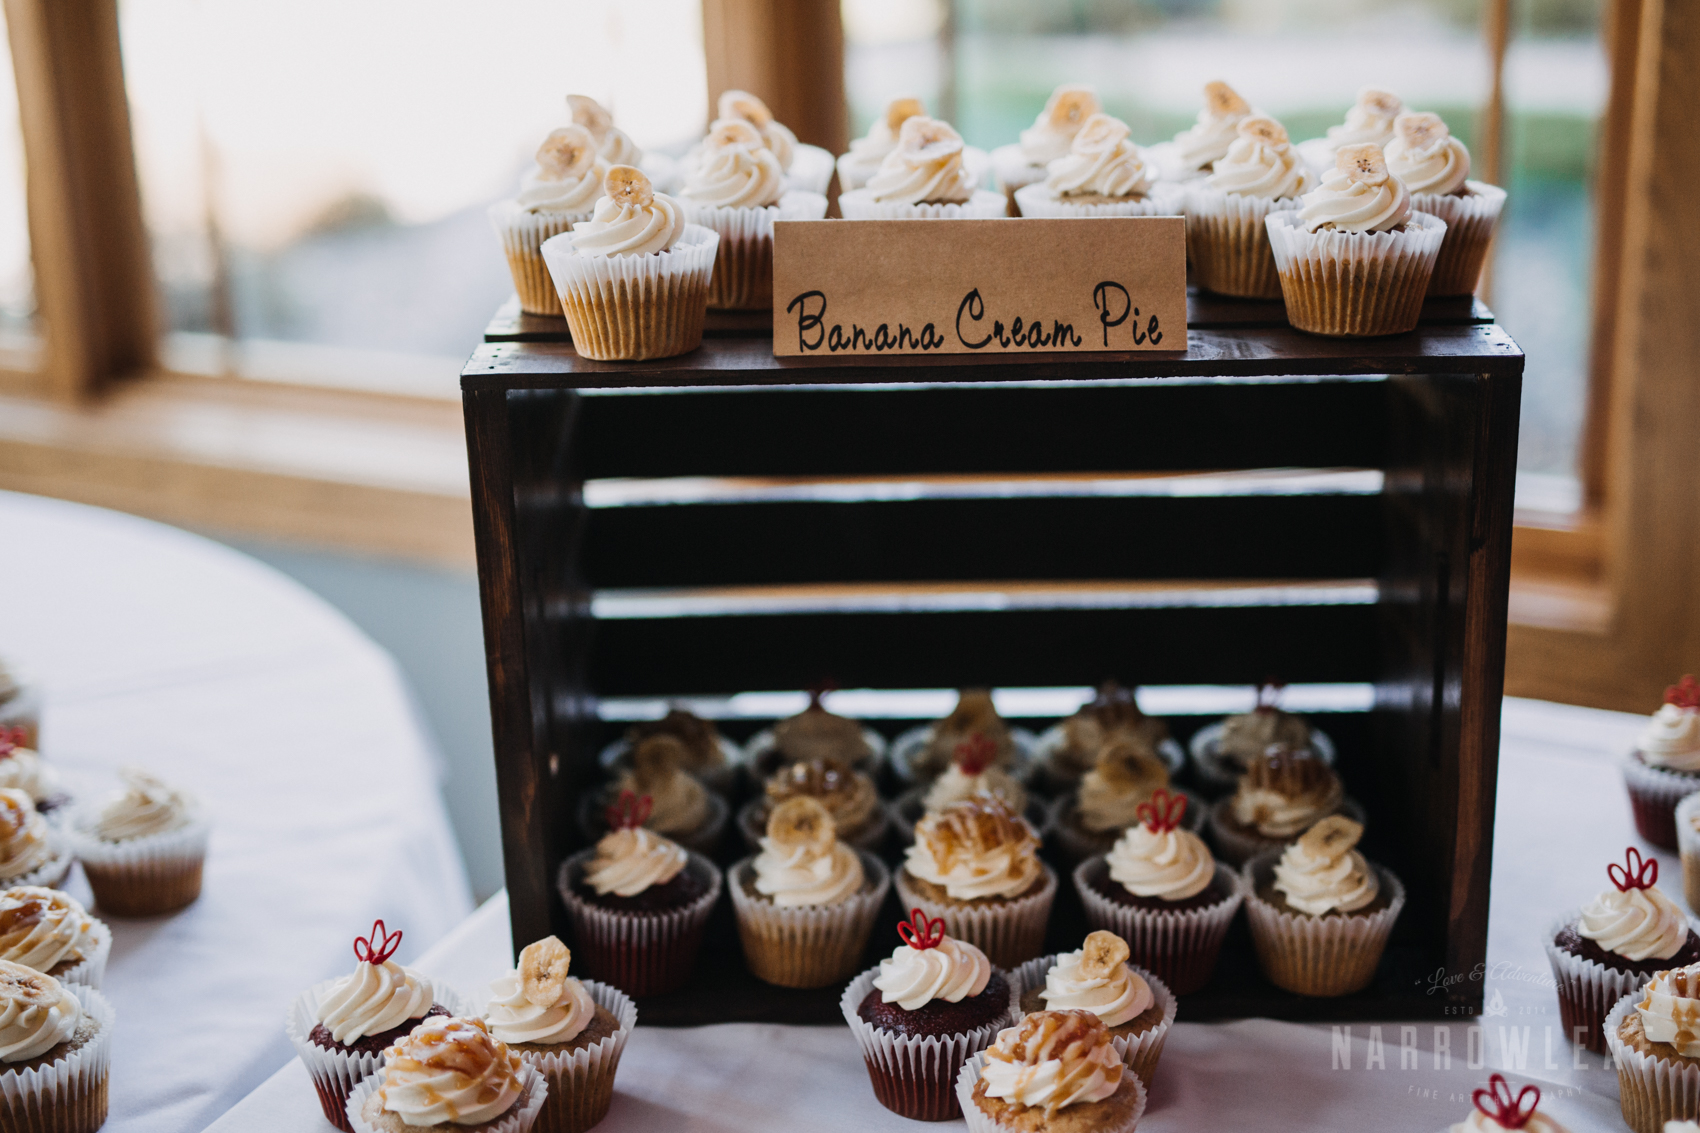 reception-cupcake-dessert-florian-gardens-summer-wedding-wisconsin-66.jpg